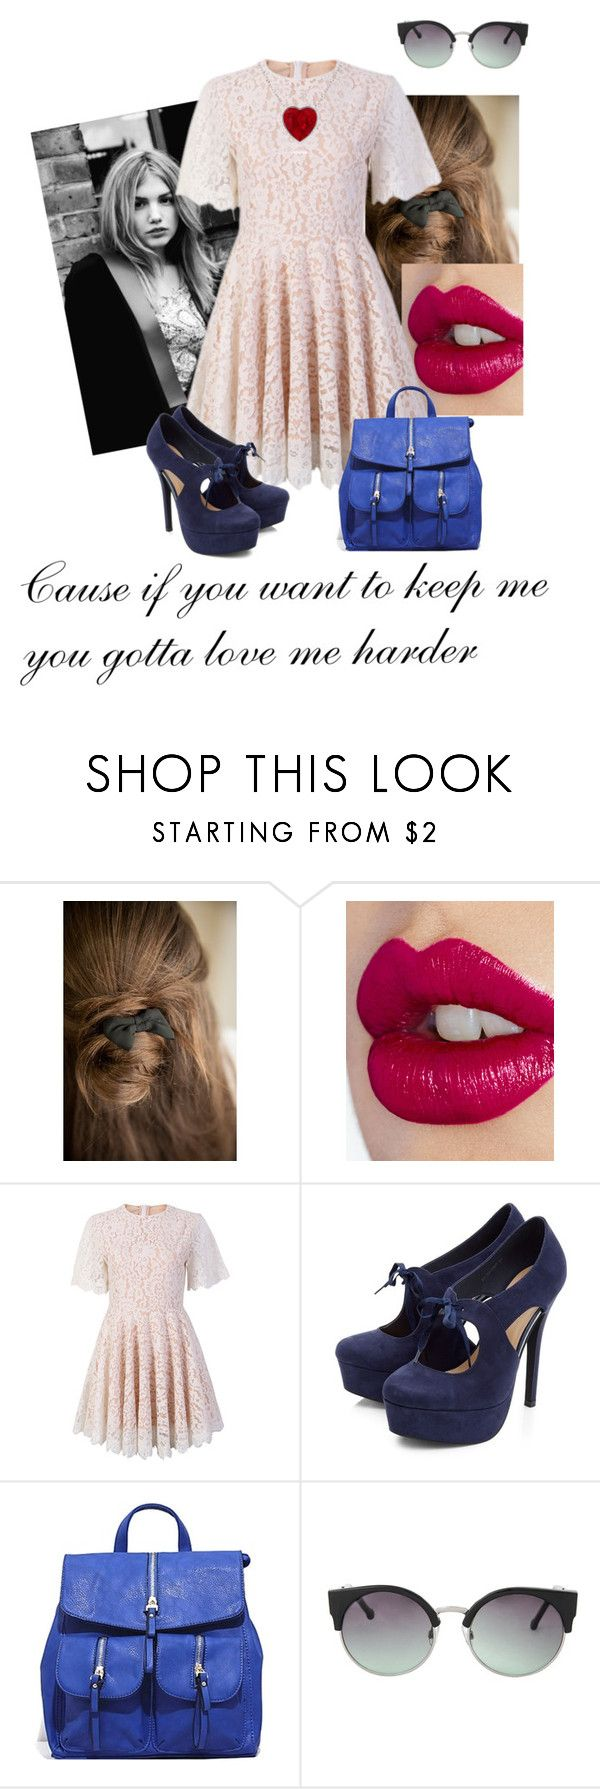 """Cassie Duchanne"" by lygia-soares ❤ liked on Polyvore featuring Charlotte Tilbury, FC Select Design, MANGO, women's clothing, women, female, woman, misses and juniors"